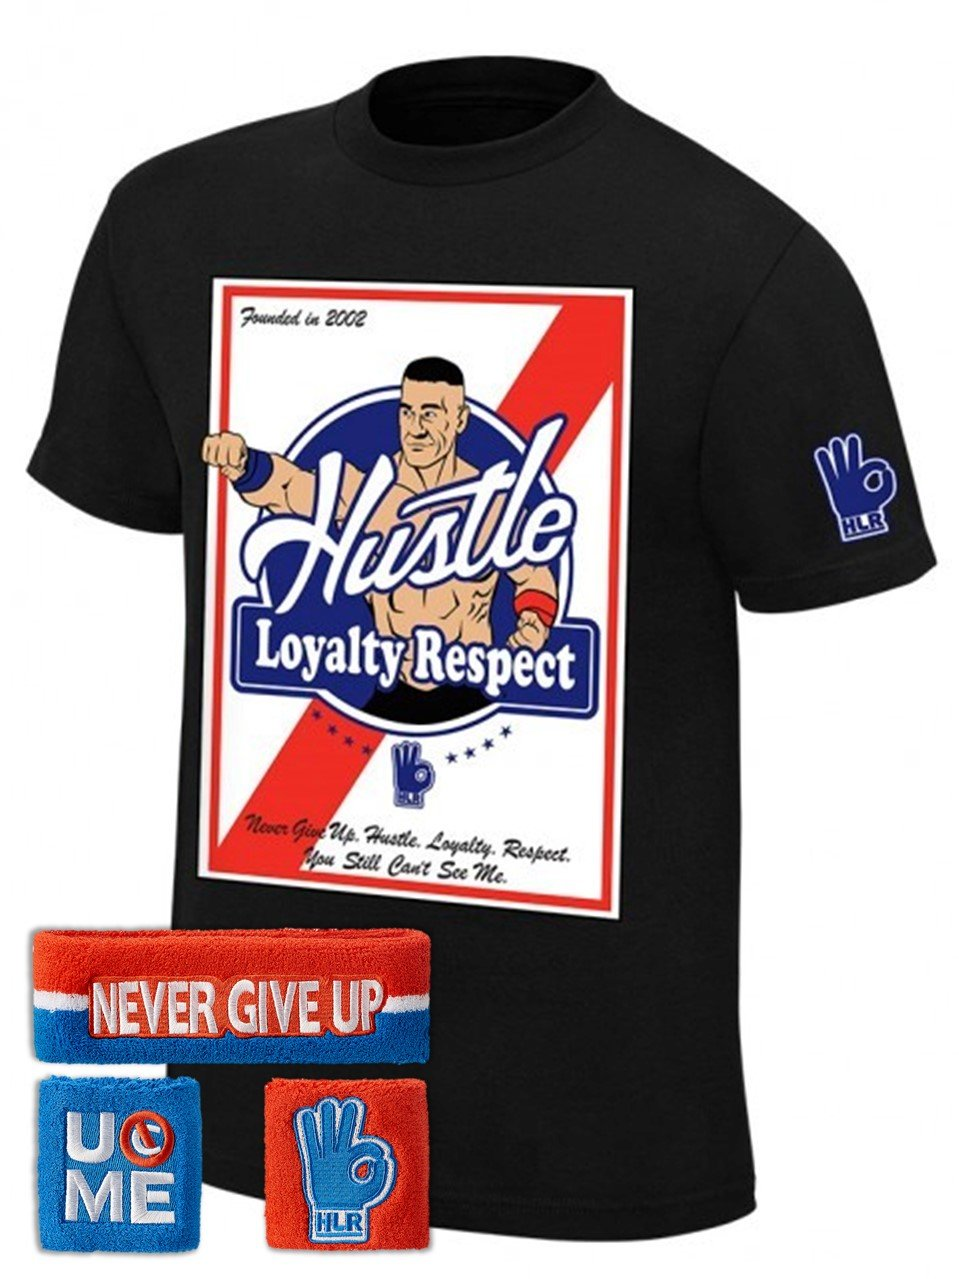 John Cena WWE Founded in 2002 T-shirt Headband Wristbands Boys Juvy-YL (14-16) by WWE